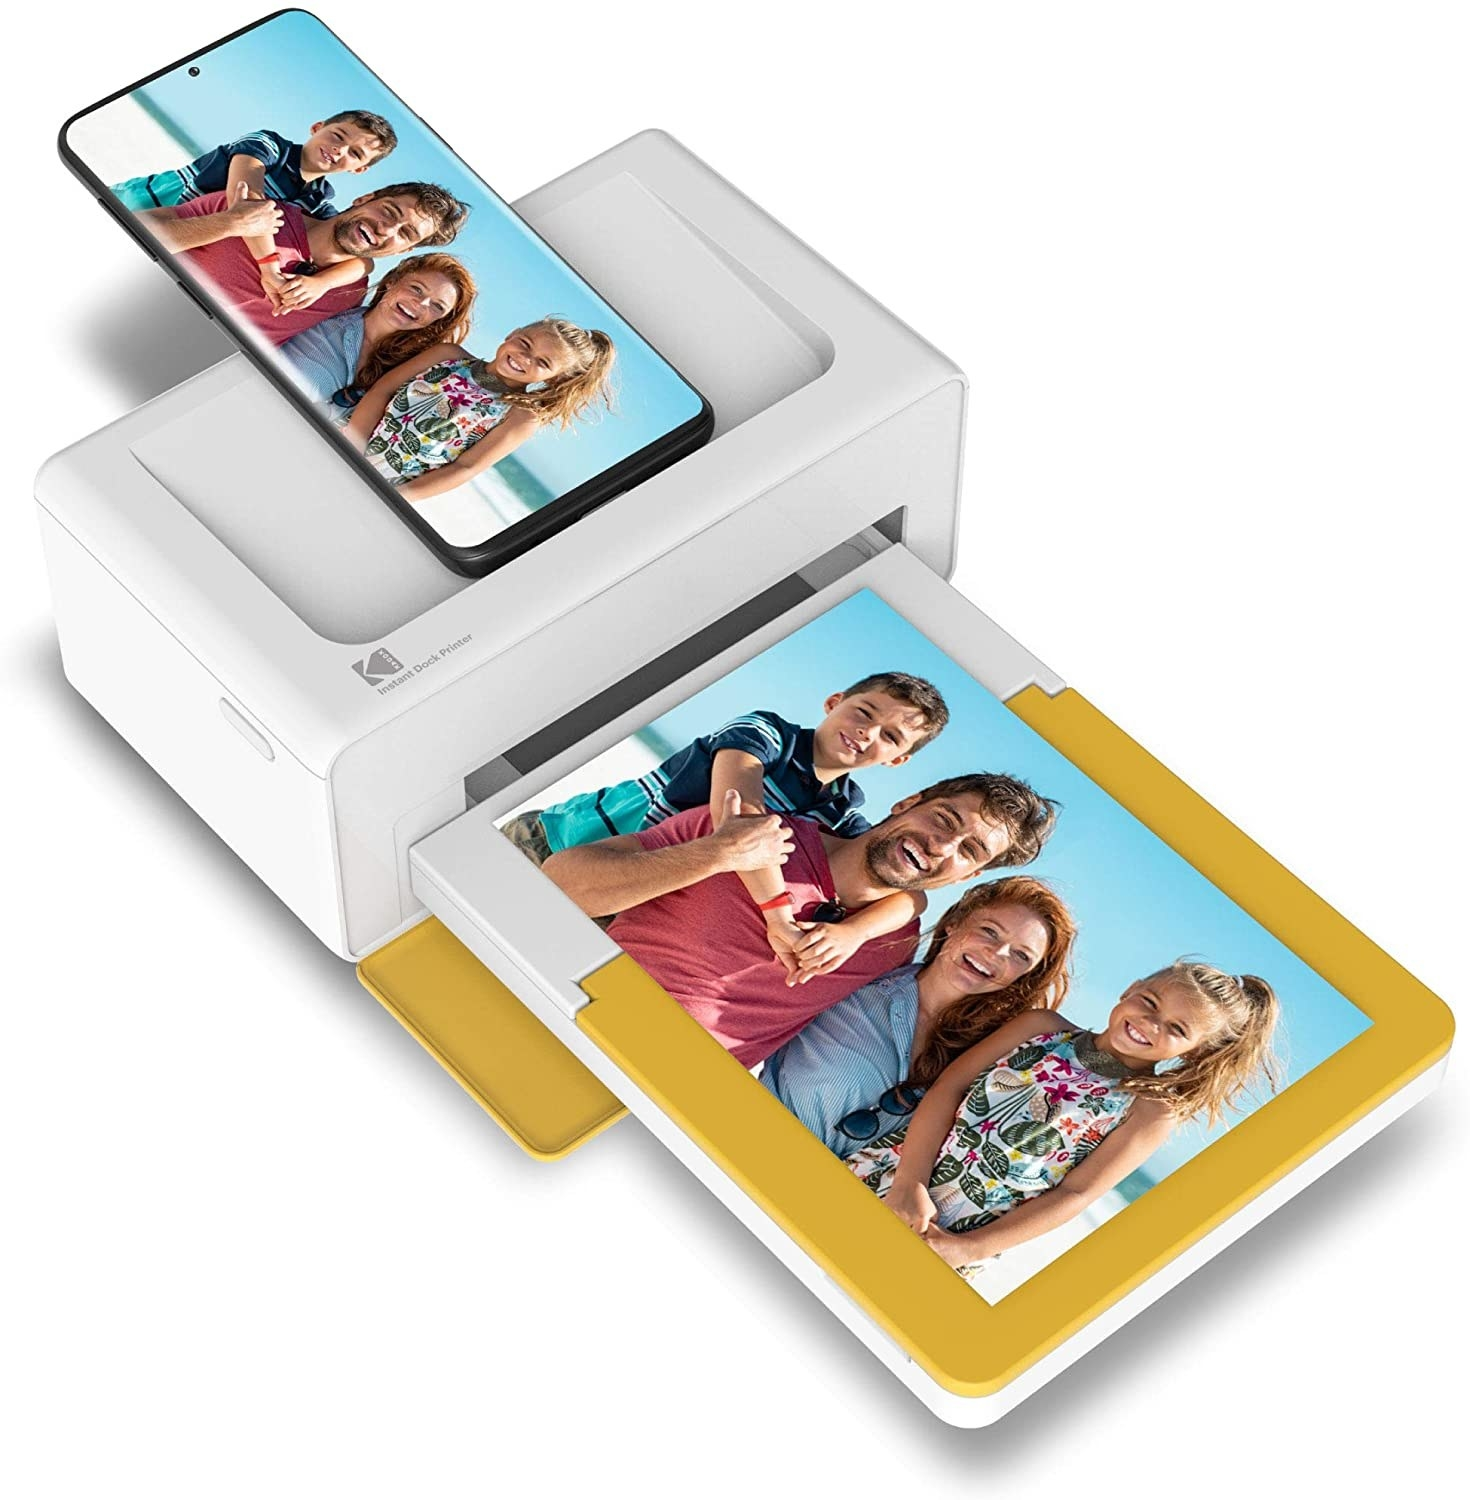 The white and yellow printer hooked up to a smartphone and printing a family photo